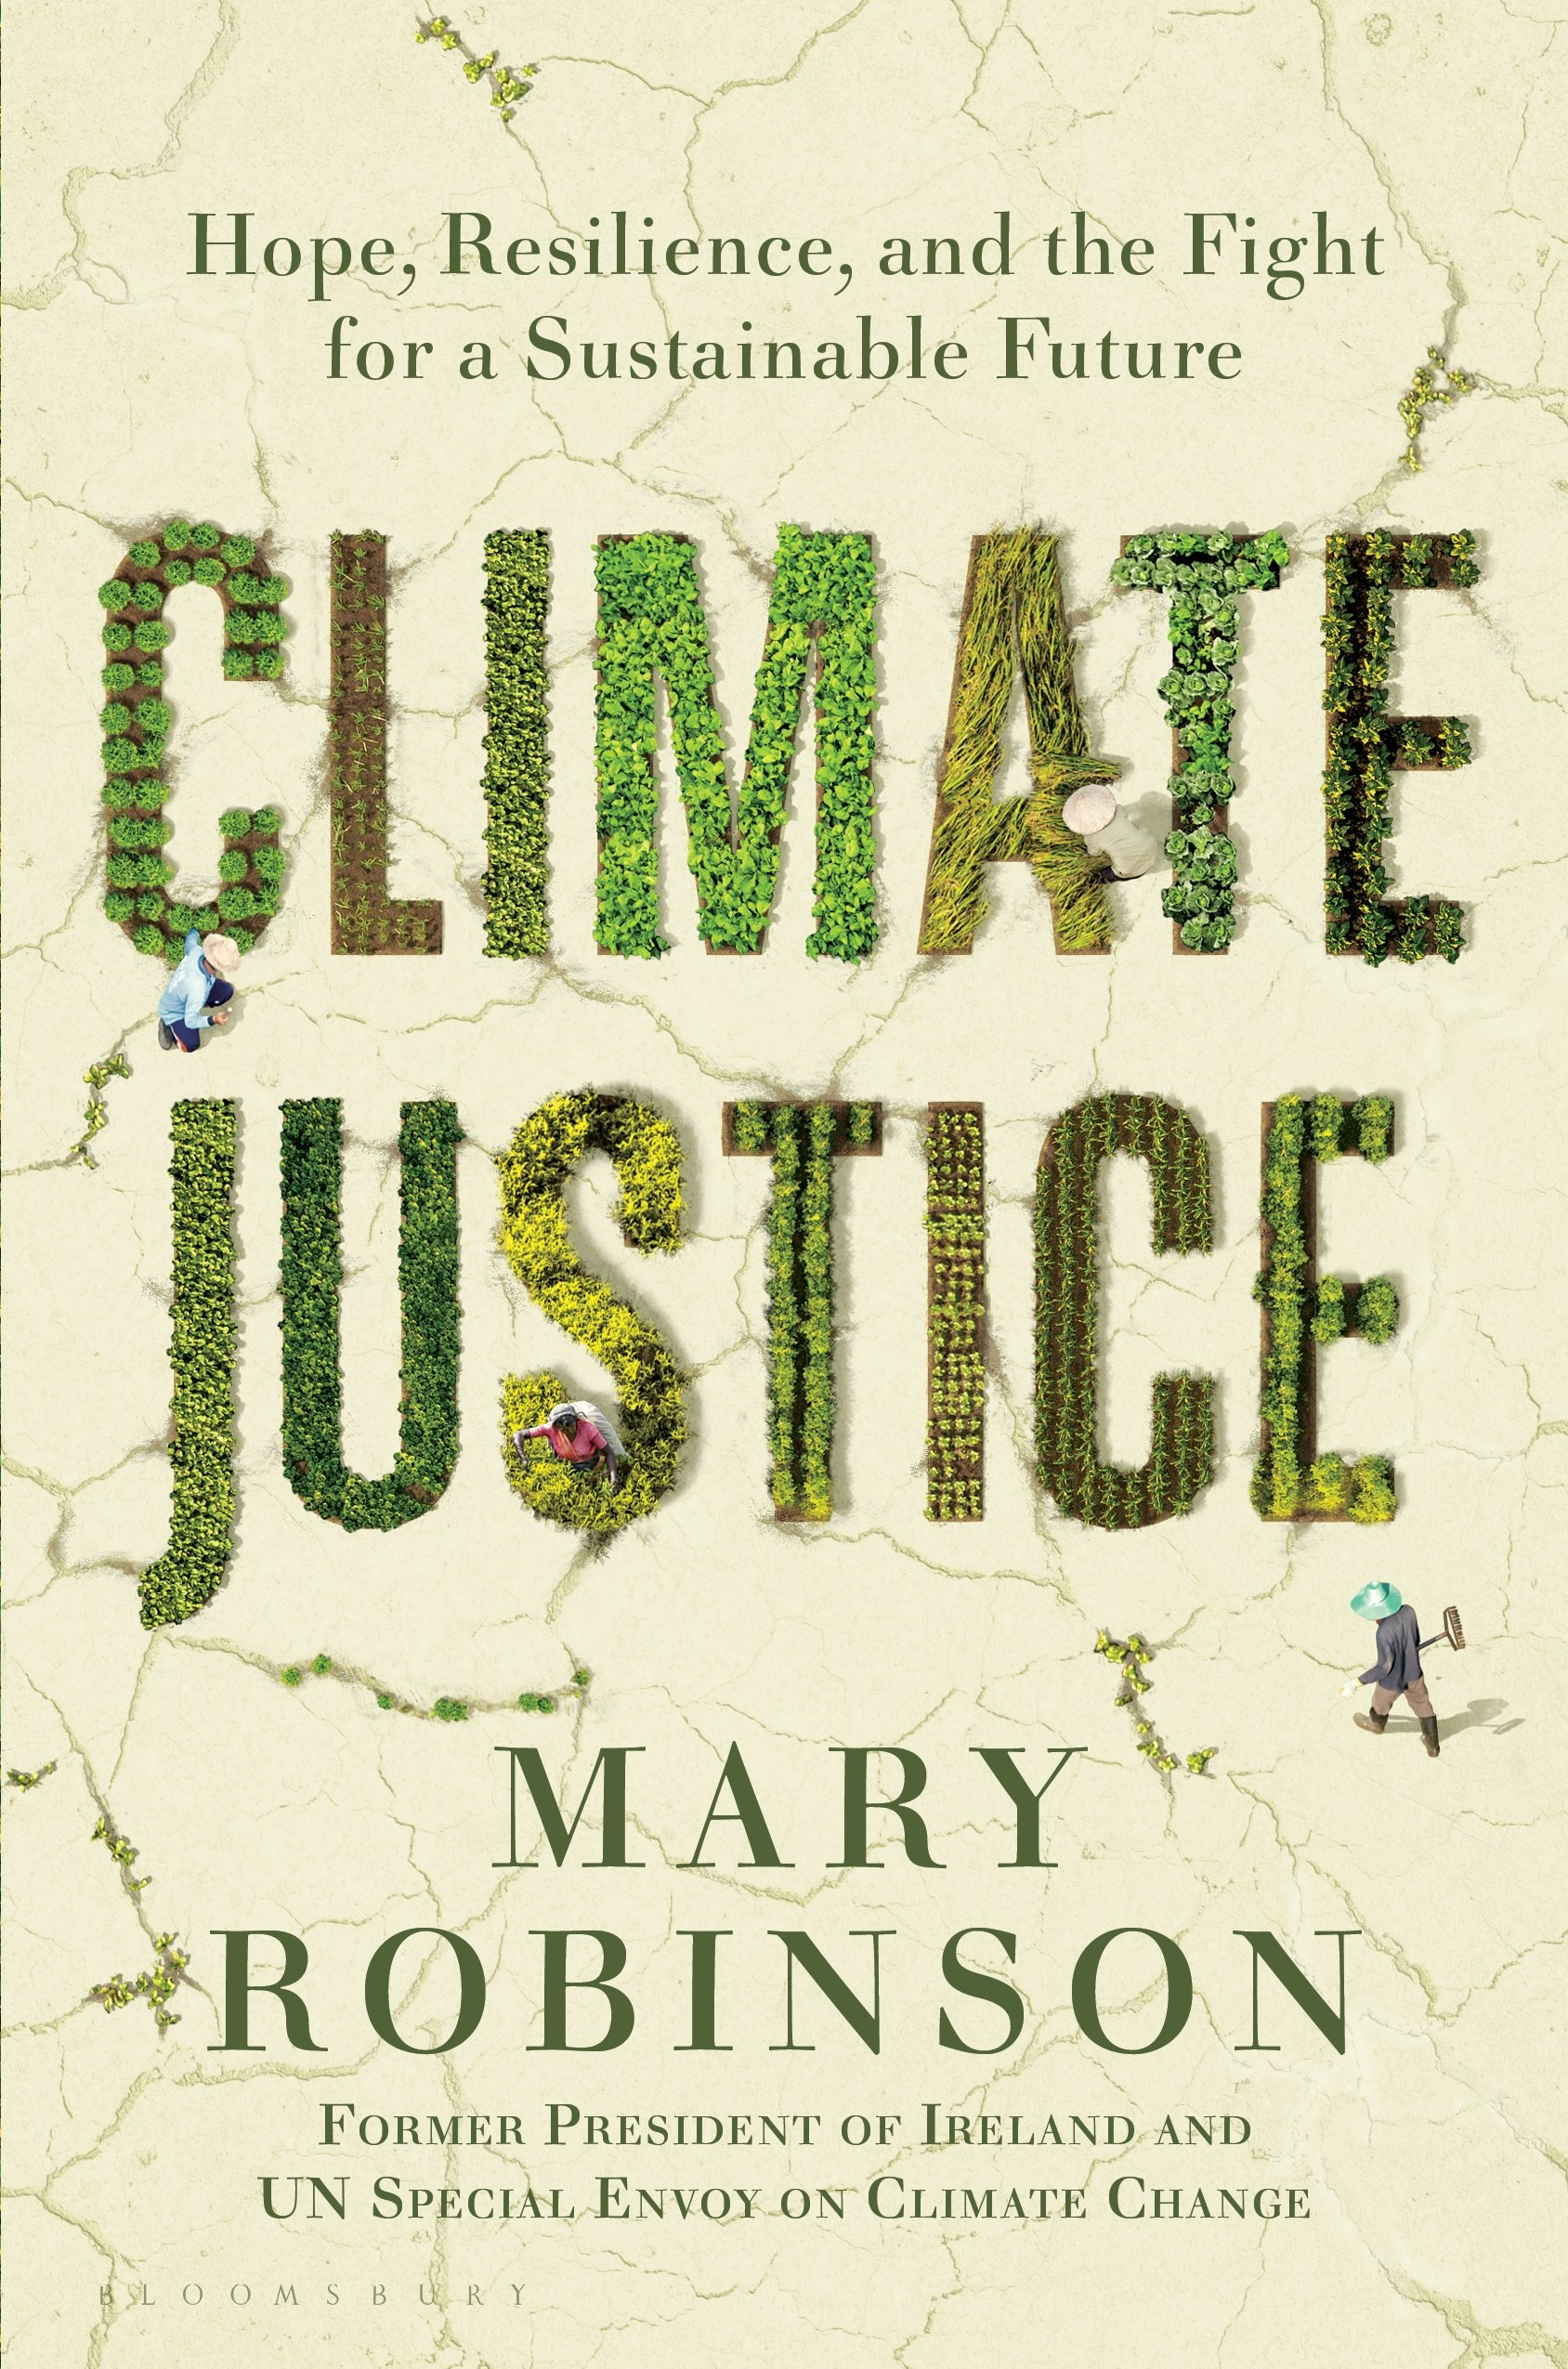 Book cover of 'Climate Justice: Hope, Resilience, and the Fight for a Sustainable Future' by Mary Robinson